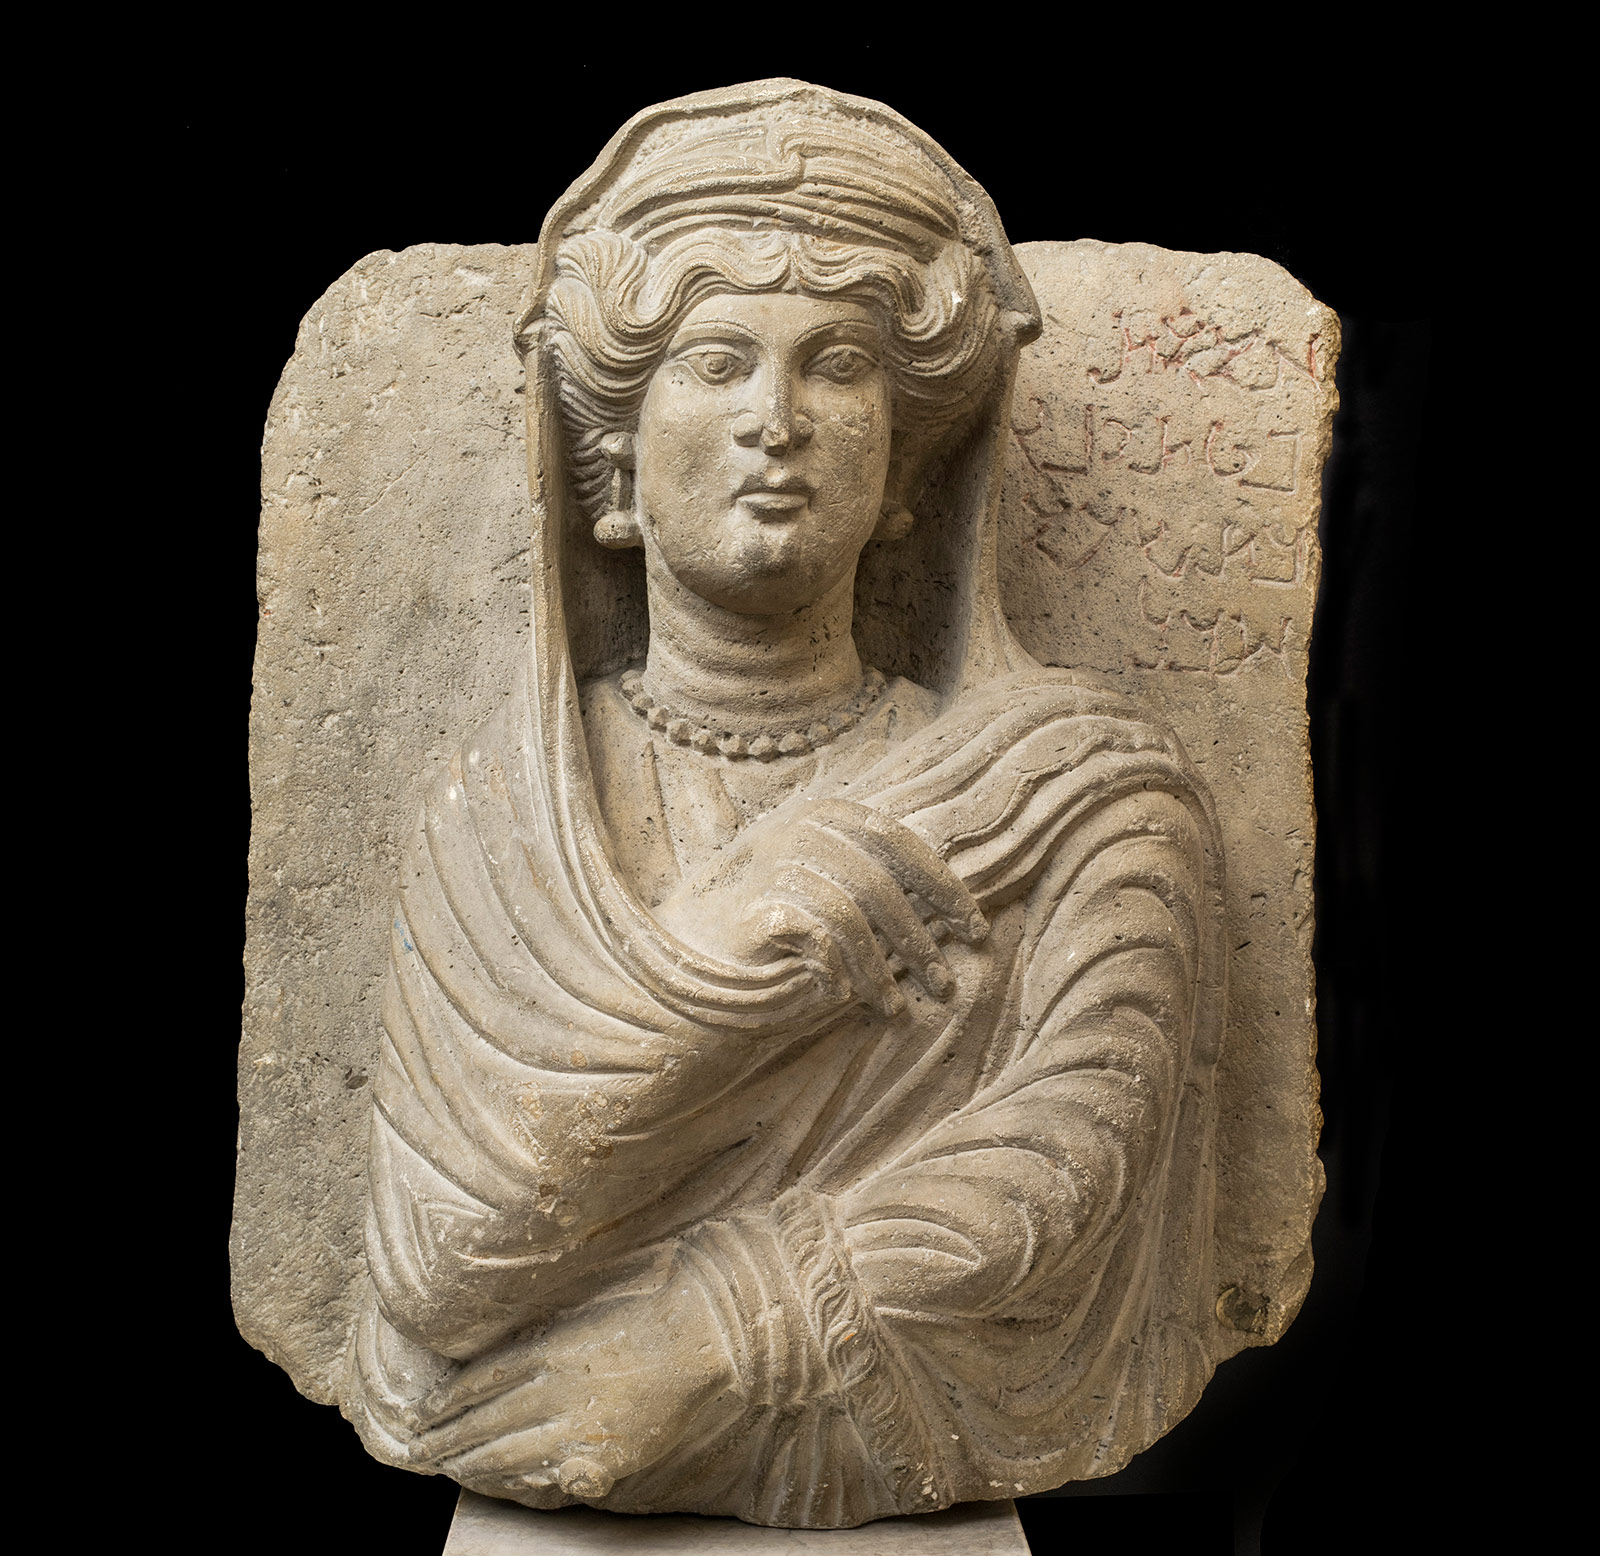 Limestone bust of a woman in a headdress holding her right hand to her shoulder